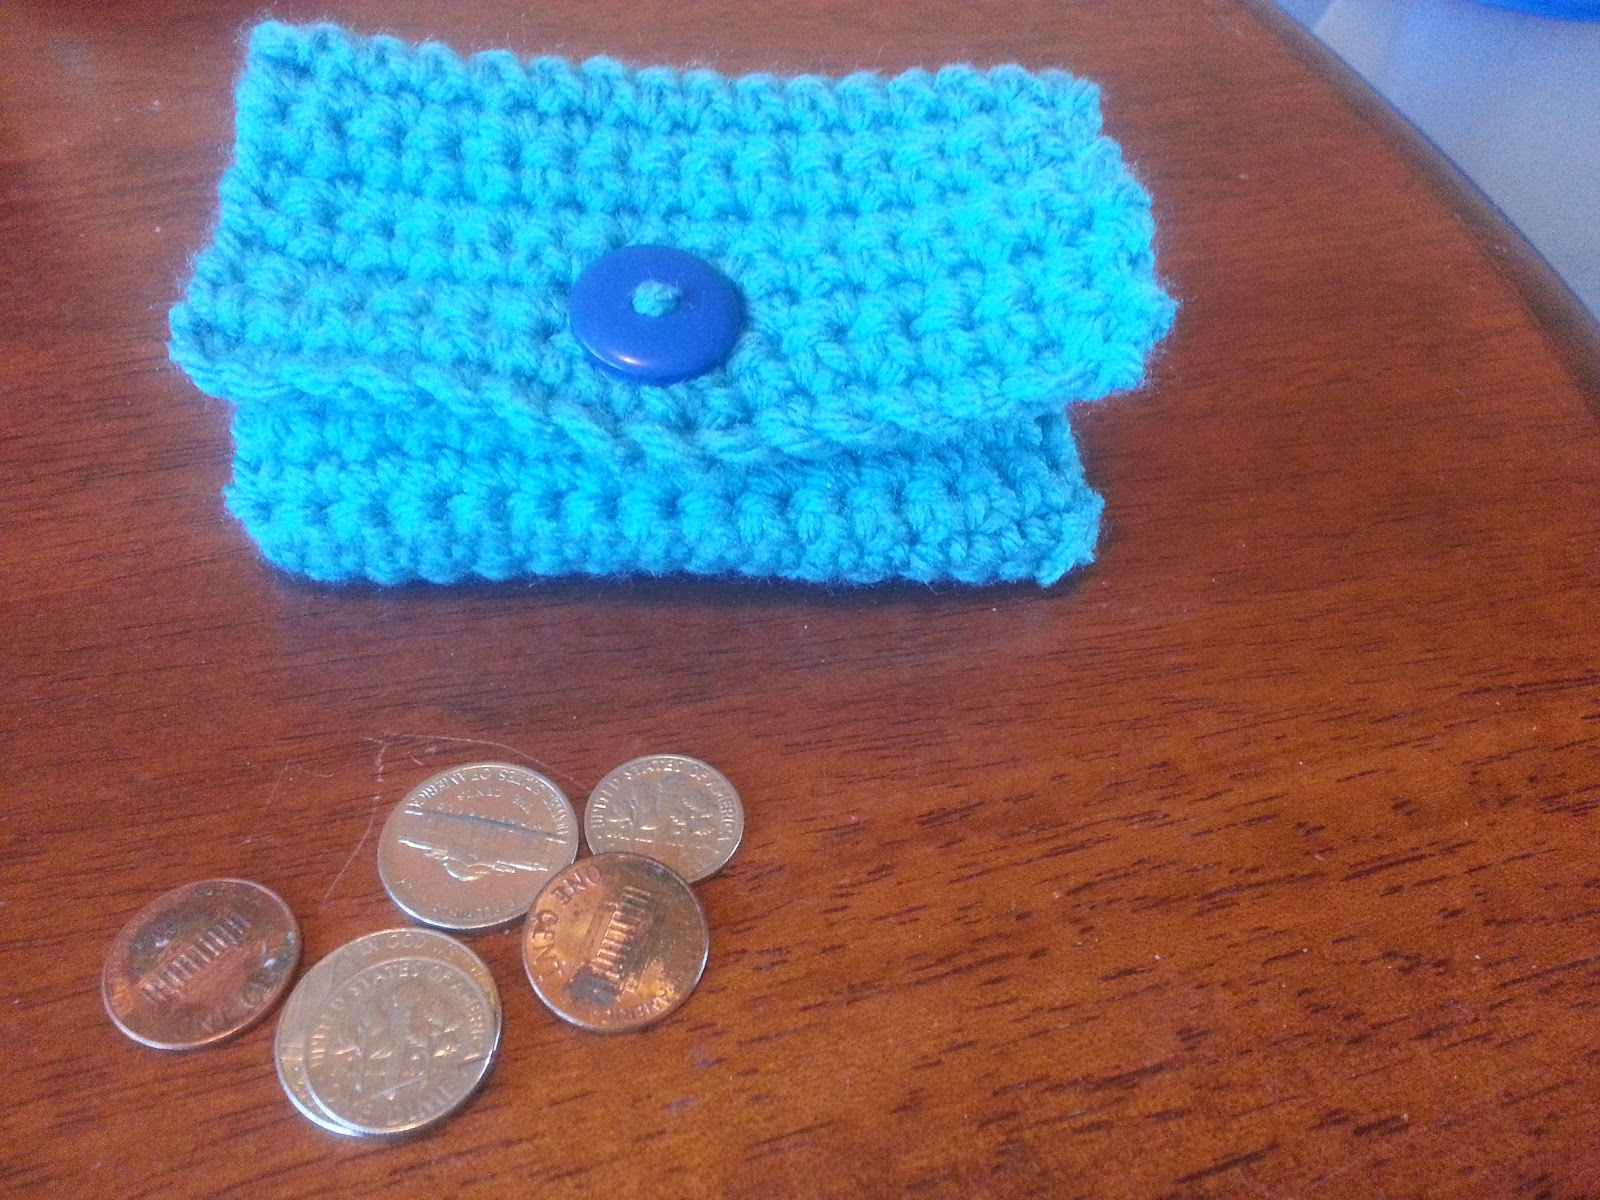 Simple Crochet Coin Purse : Collection of Crochet Stitches: Pattern: Easy Coin Purse/Wallet